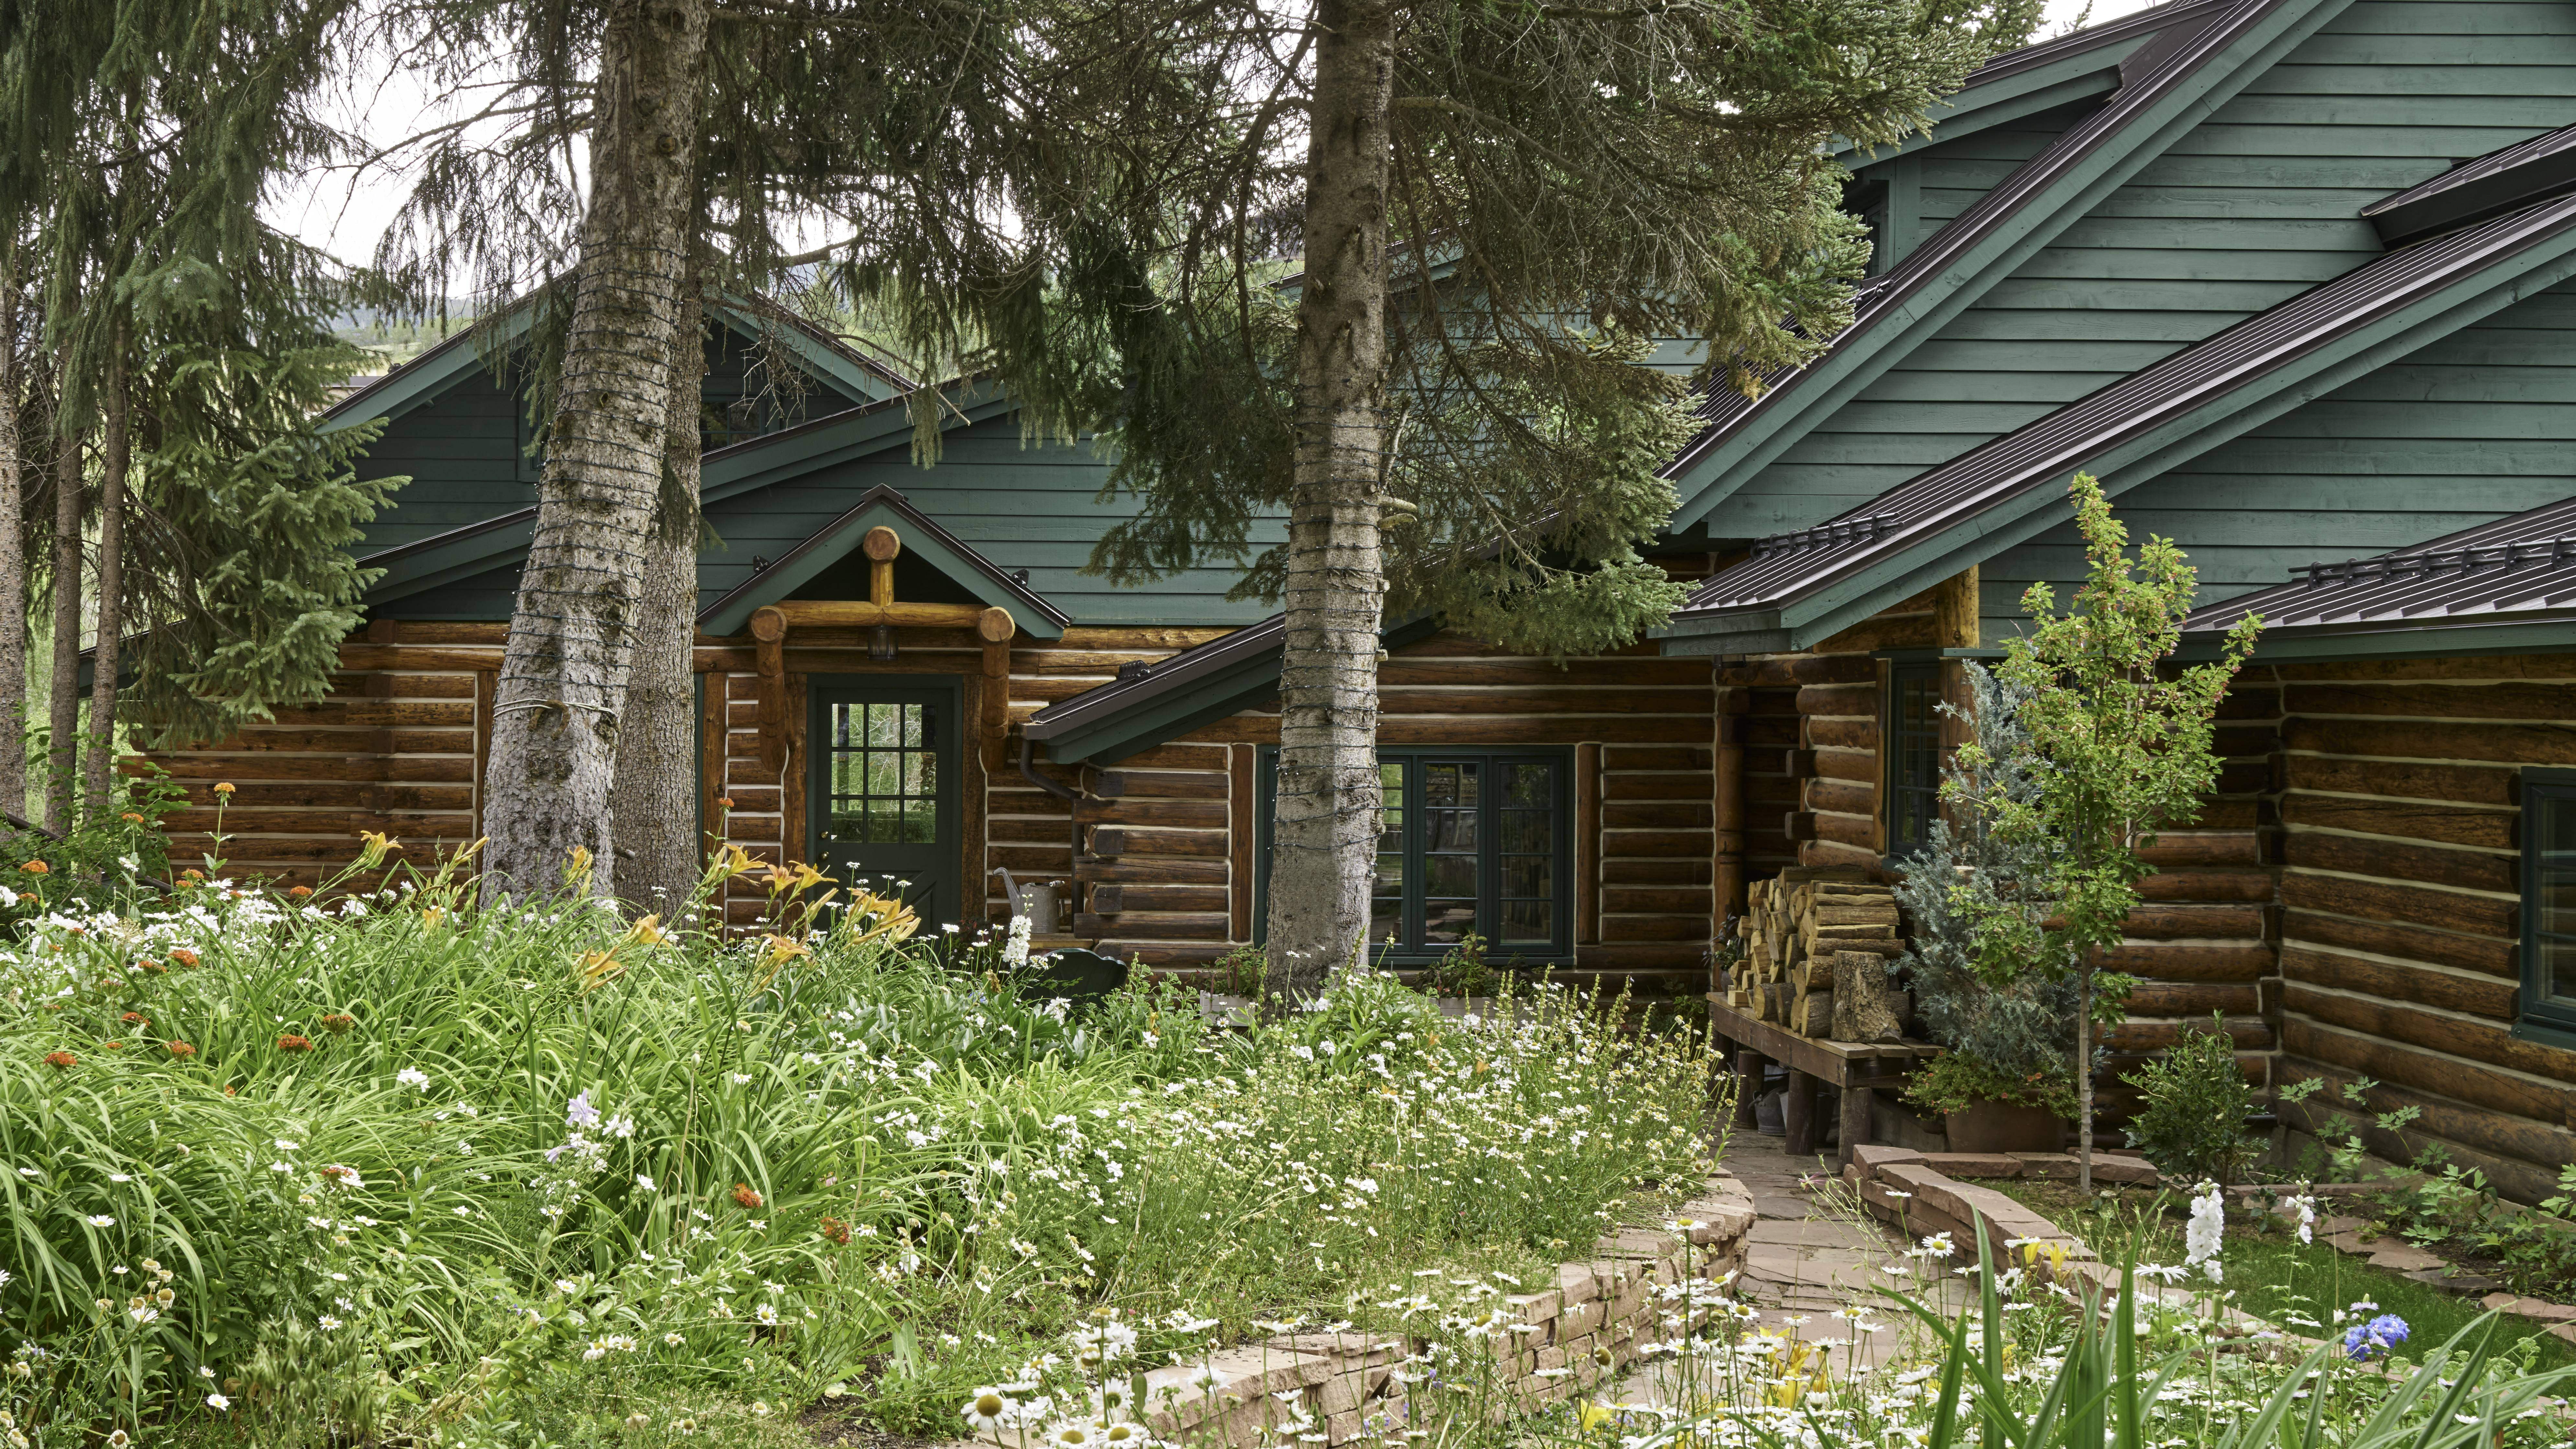 The Jenkins Home: Merging the past with the present   SteamboatToday.com